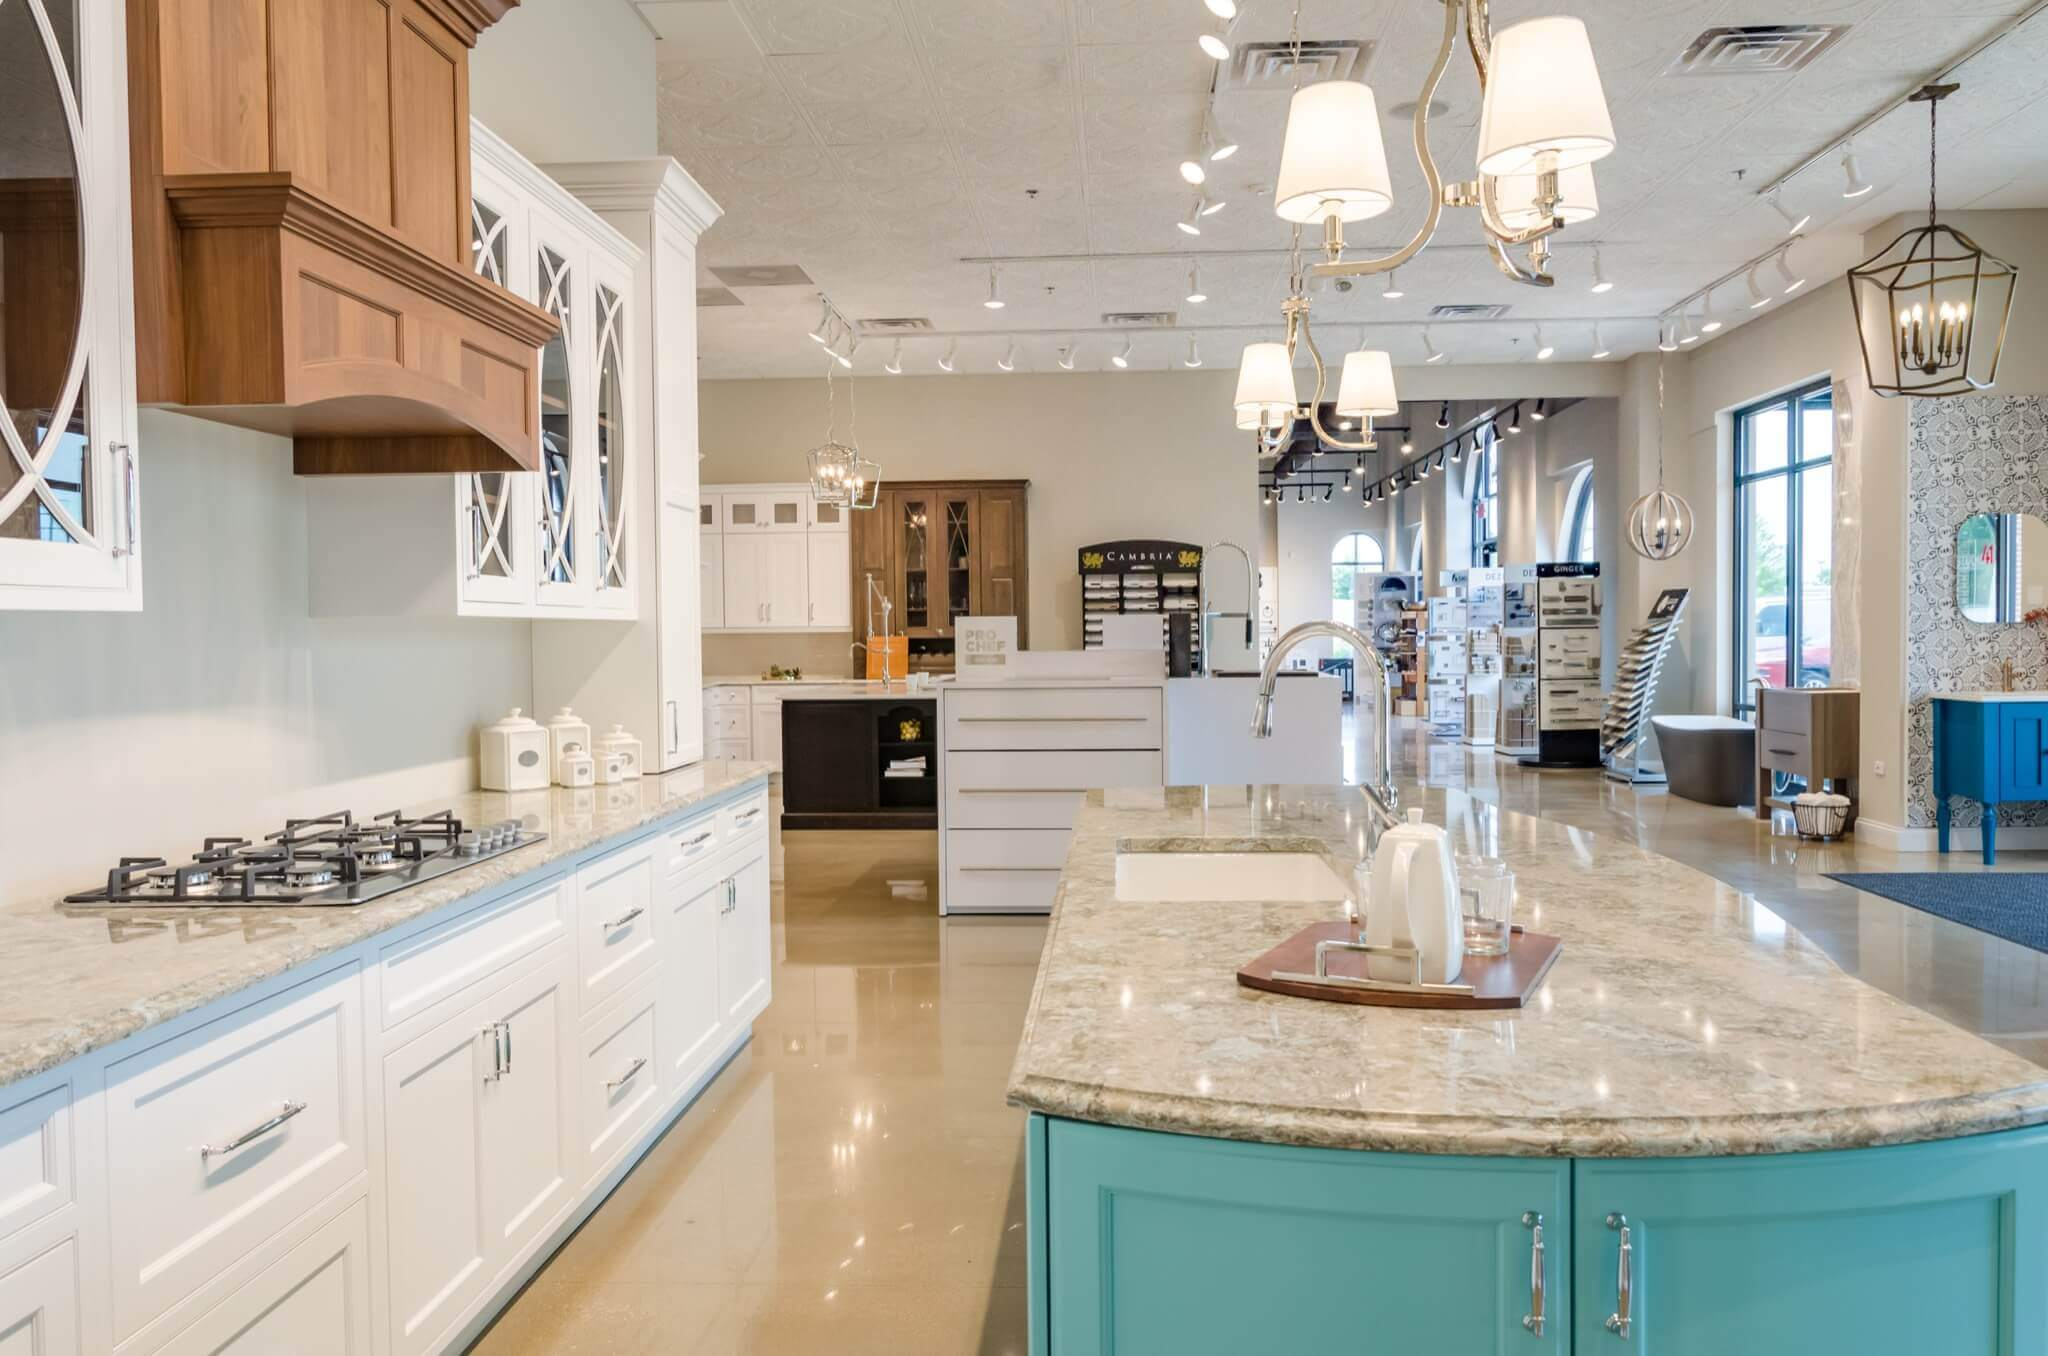 kitchen design naperville used cabinets studio41 home showroom locations virtual tour